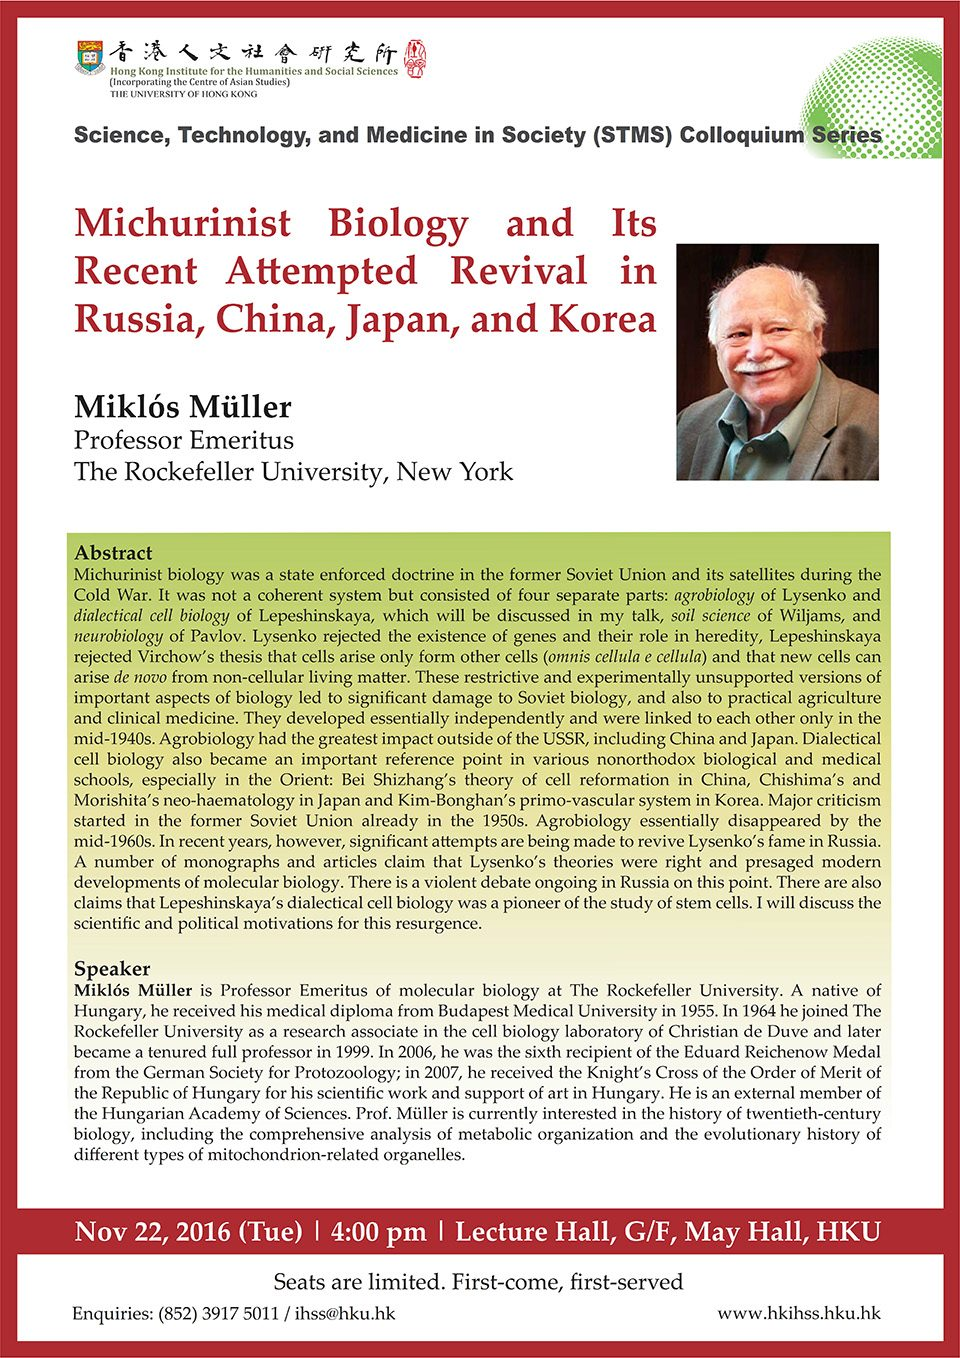 "Public Lecture on ""Michurinist Biology and Its Recent Attempted Revival in Russia, China, Japan, and Korea"" by Prof. Miklós Müller (November 22, 2016)"